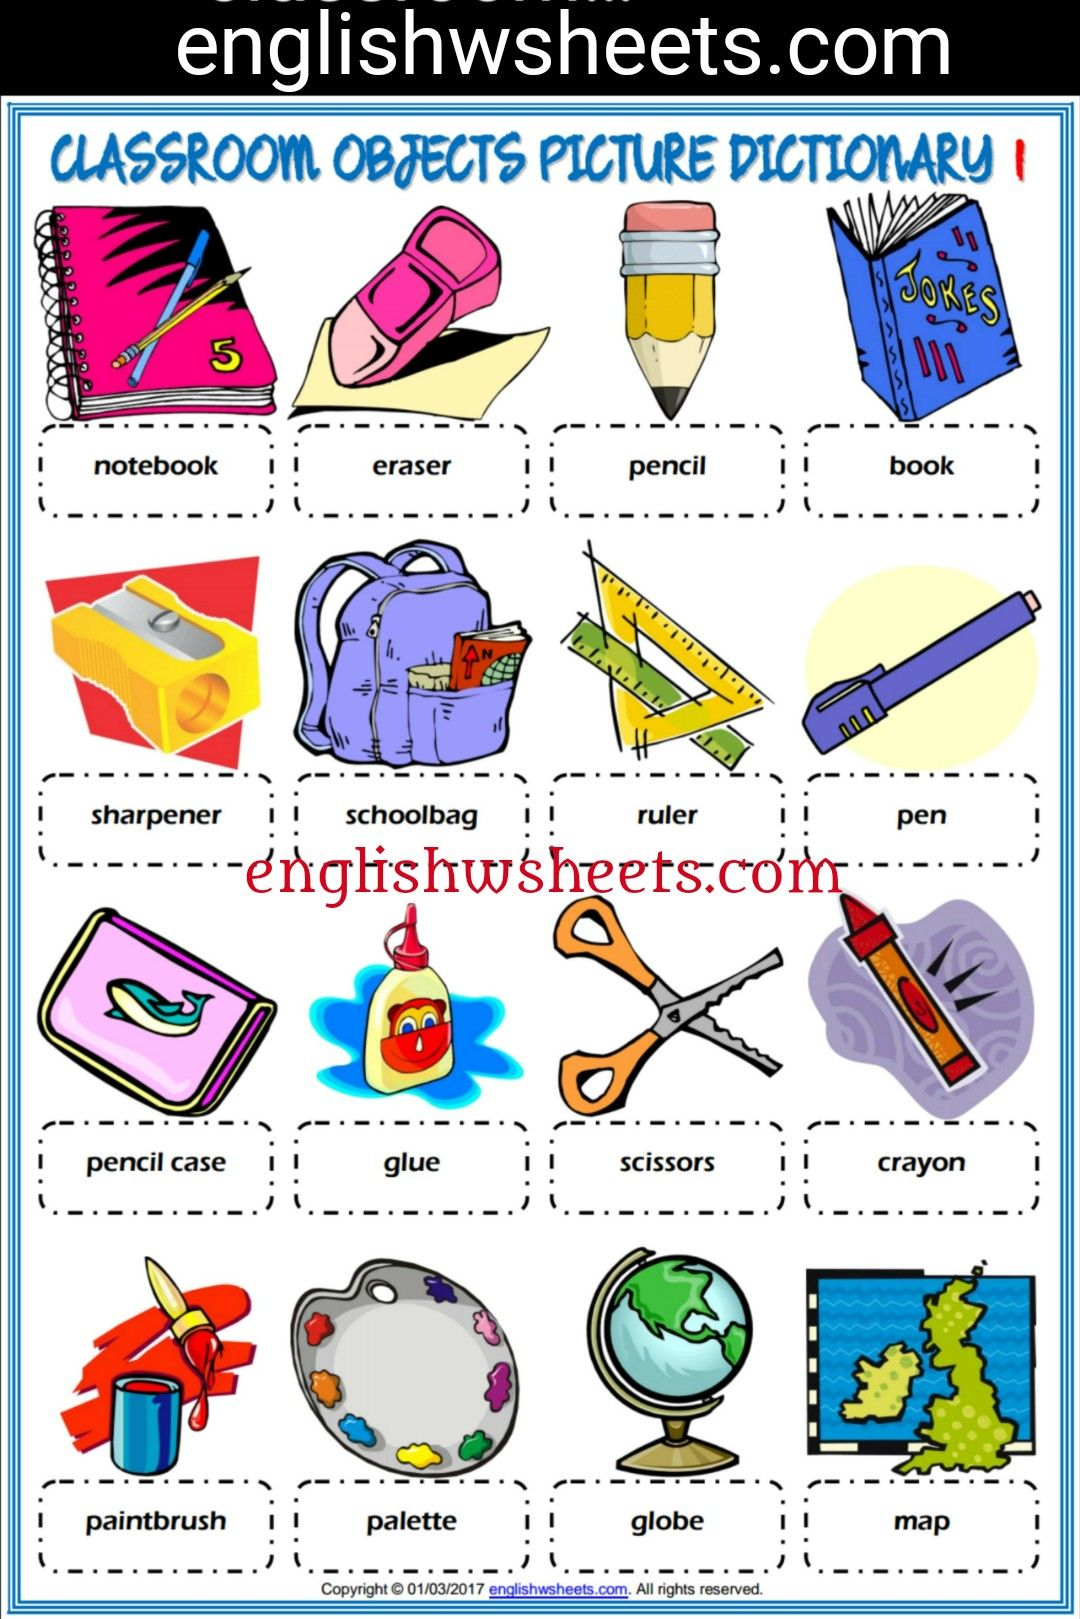 Classroom Objects Esl Printable Picture Dictionaries For Kids Classroom Objects Esl